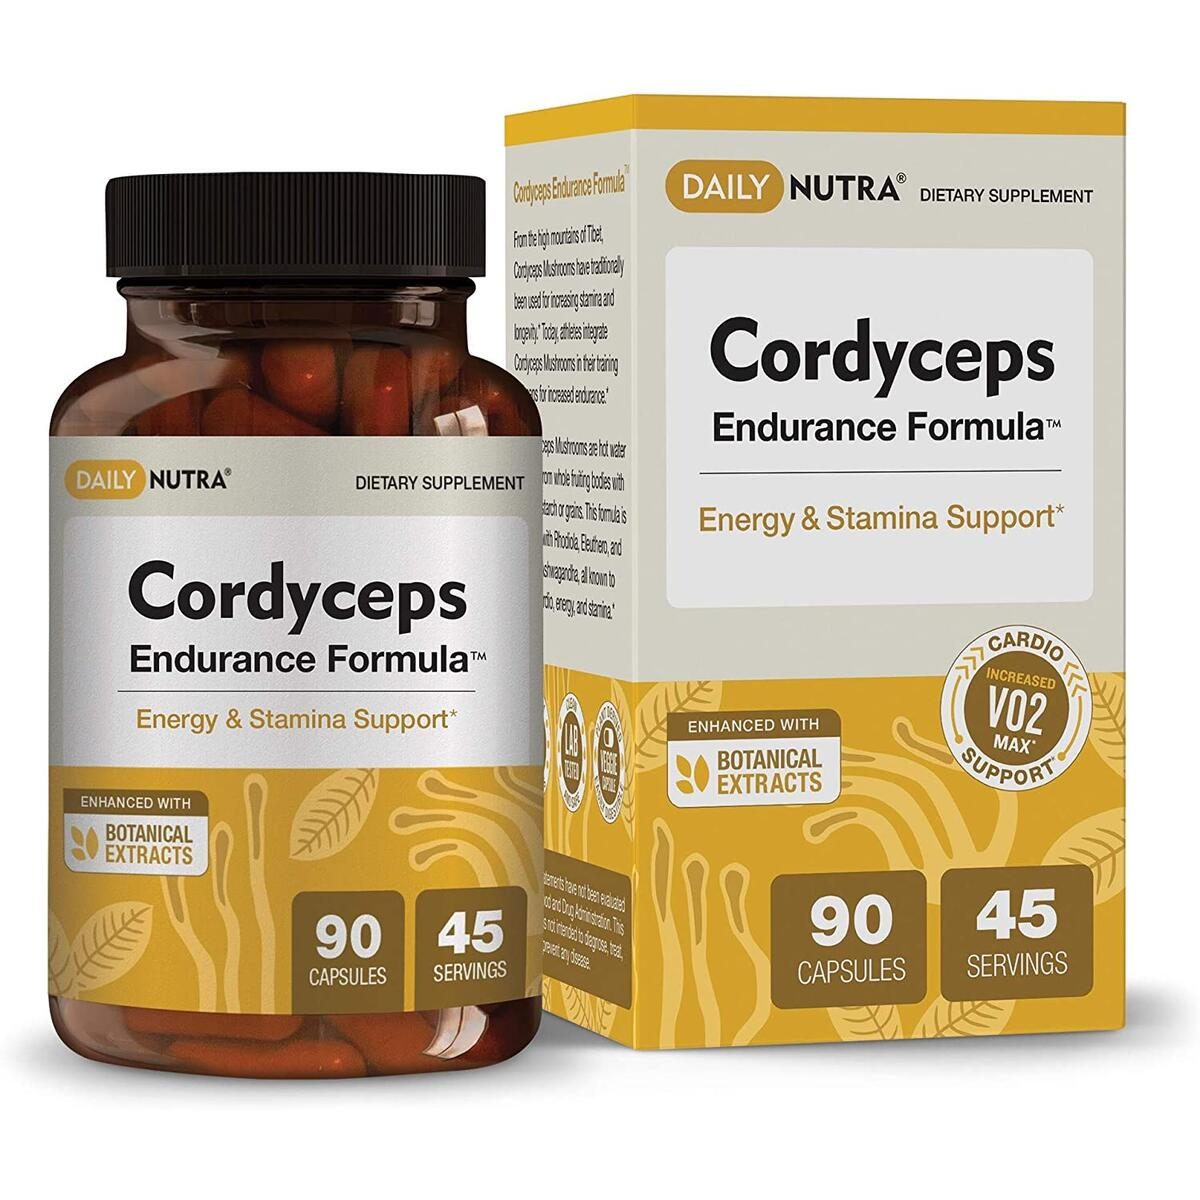 Cordyceps Endurance Formula by DailyNutra - Natural Energy Supplement - Caffeine Free | Organic Mushroom Extract with KSM-66 Ashwagandha, Eleuthero and Rhodiola